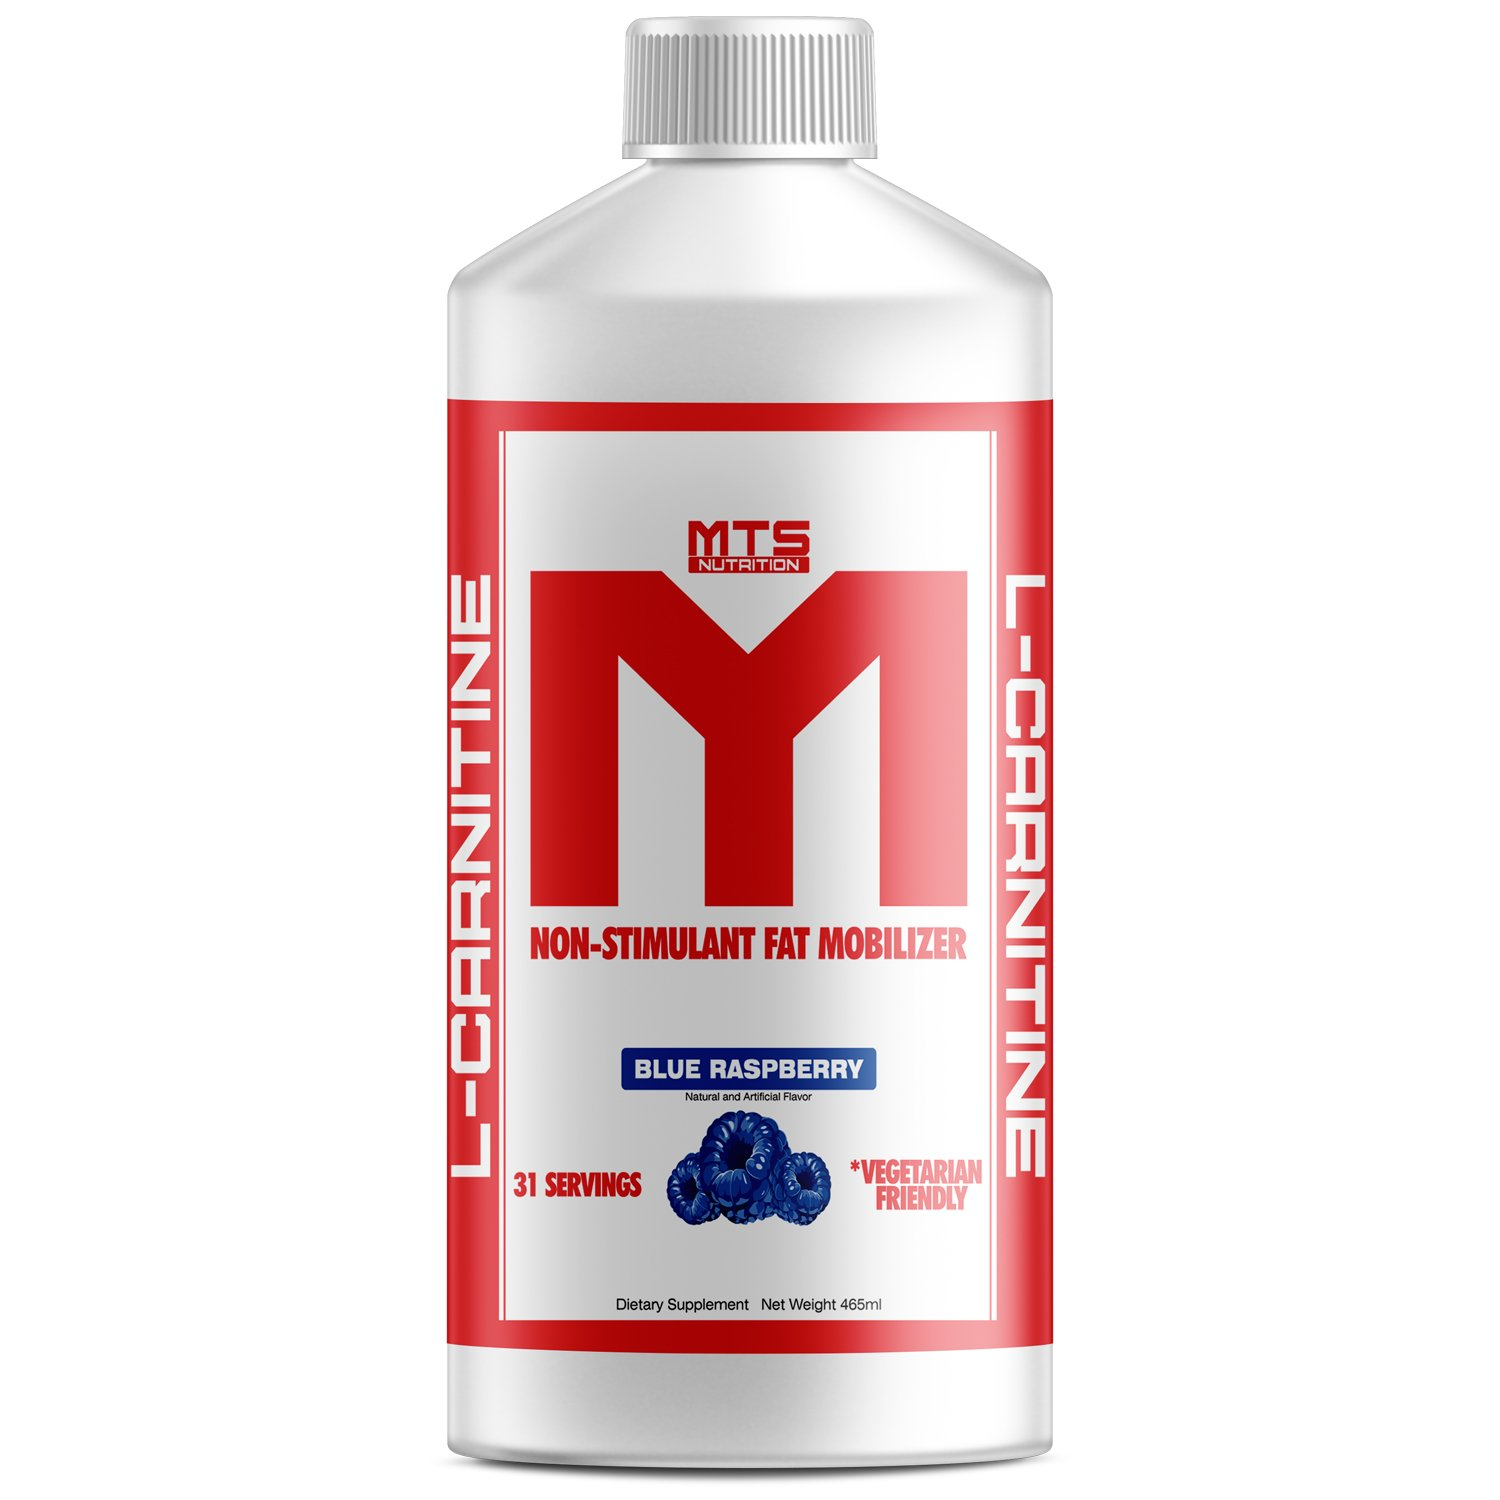 MTS Nutrition L-carnitine Non-Stimulant Fat Mobilizer